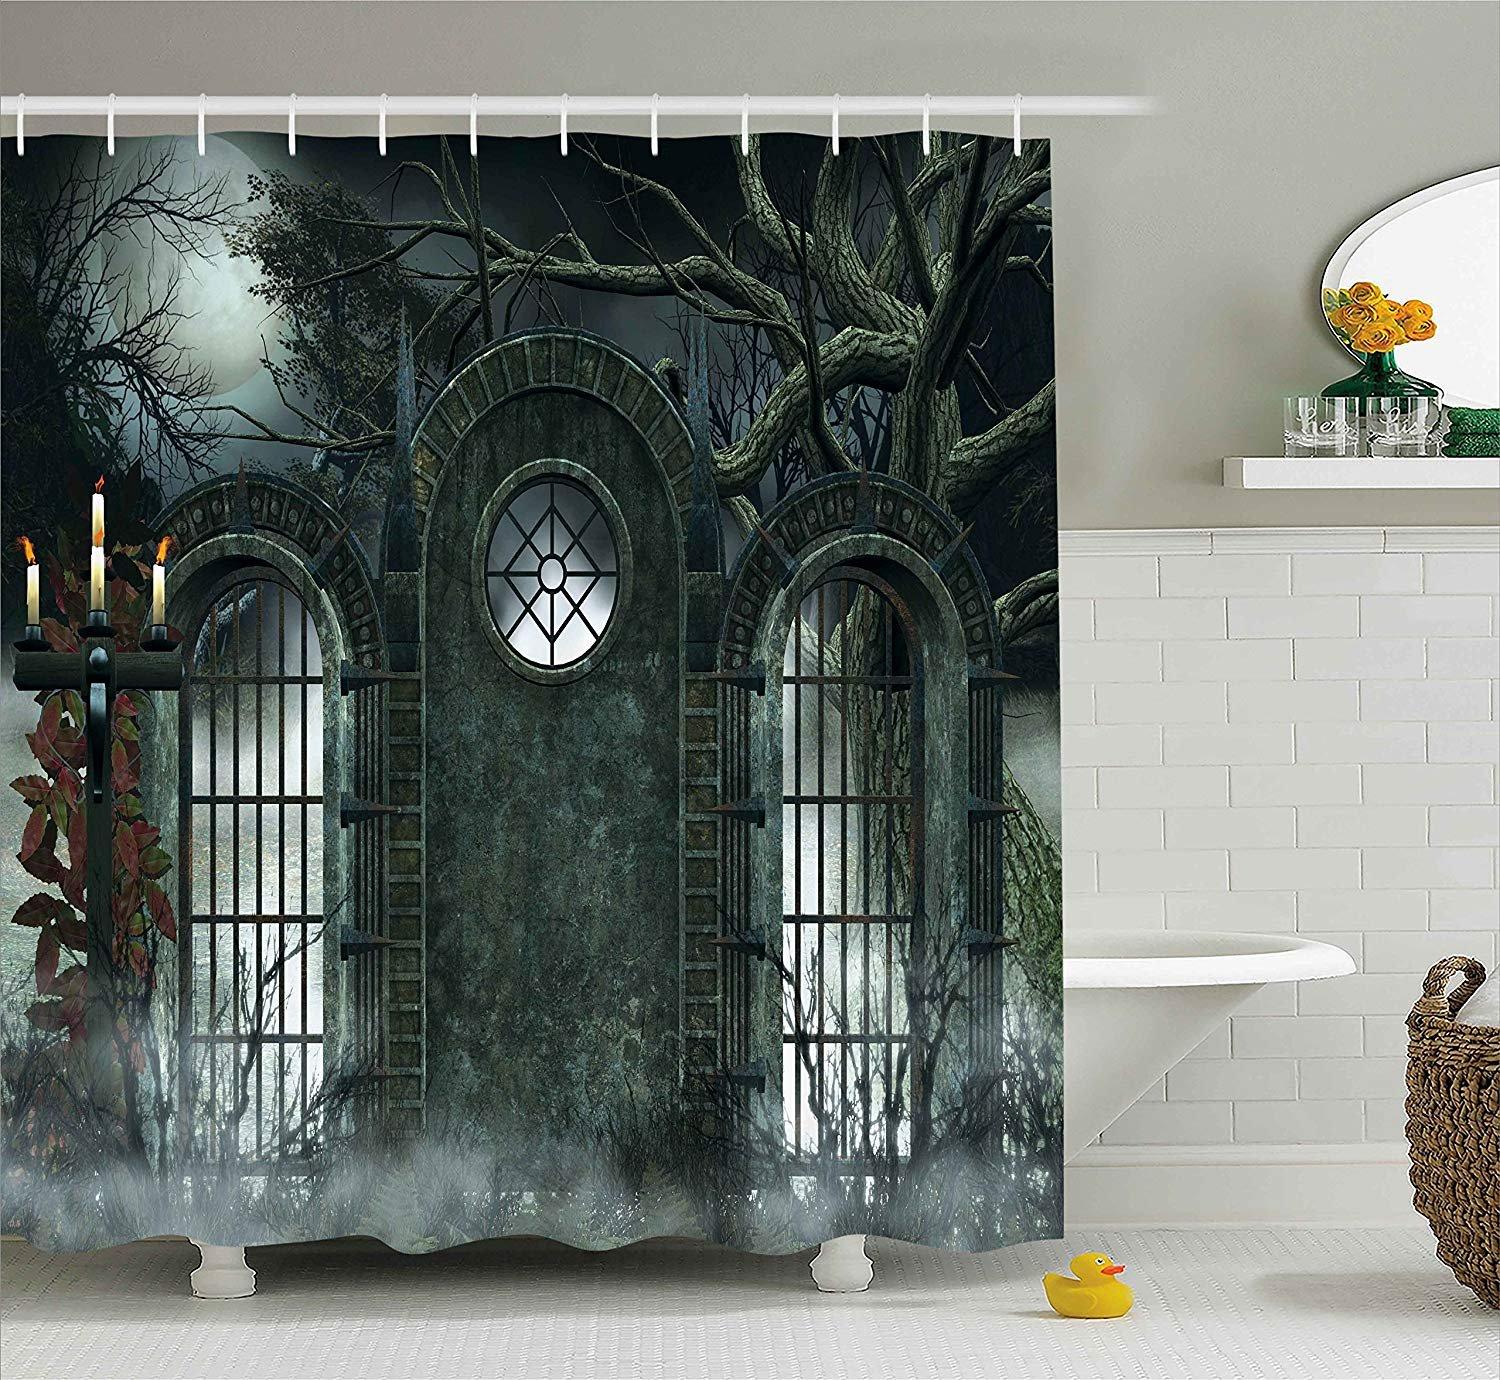 Yomyceo Horror House Decor Shower Curtain by, Moon Halloween Ancient Historical Gate Gothic Background Candles Fiction View, Fabric Bathroom Decor Set with Hooks, 72X72 Inches, Hunter Green